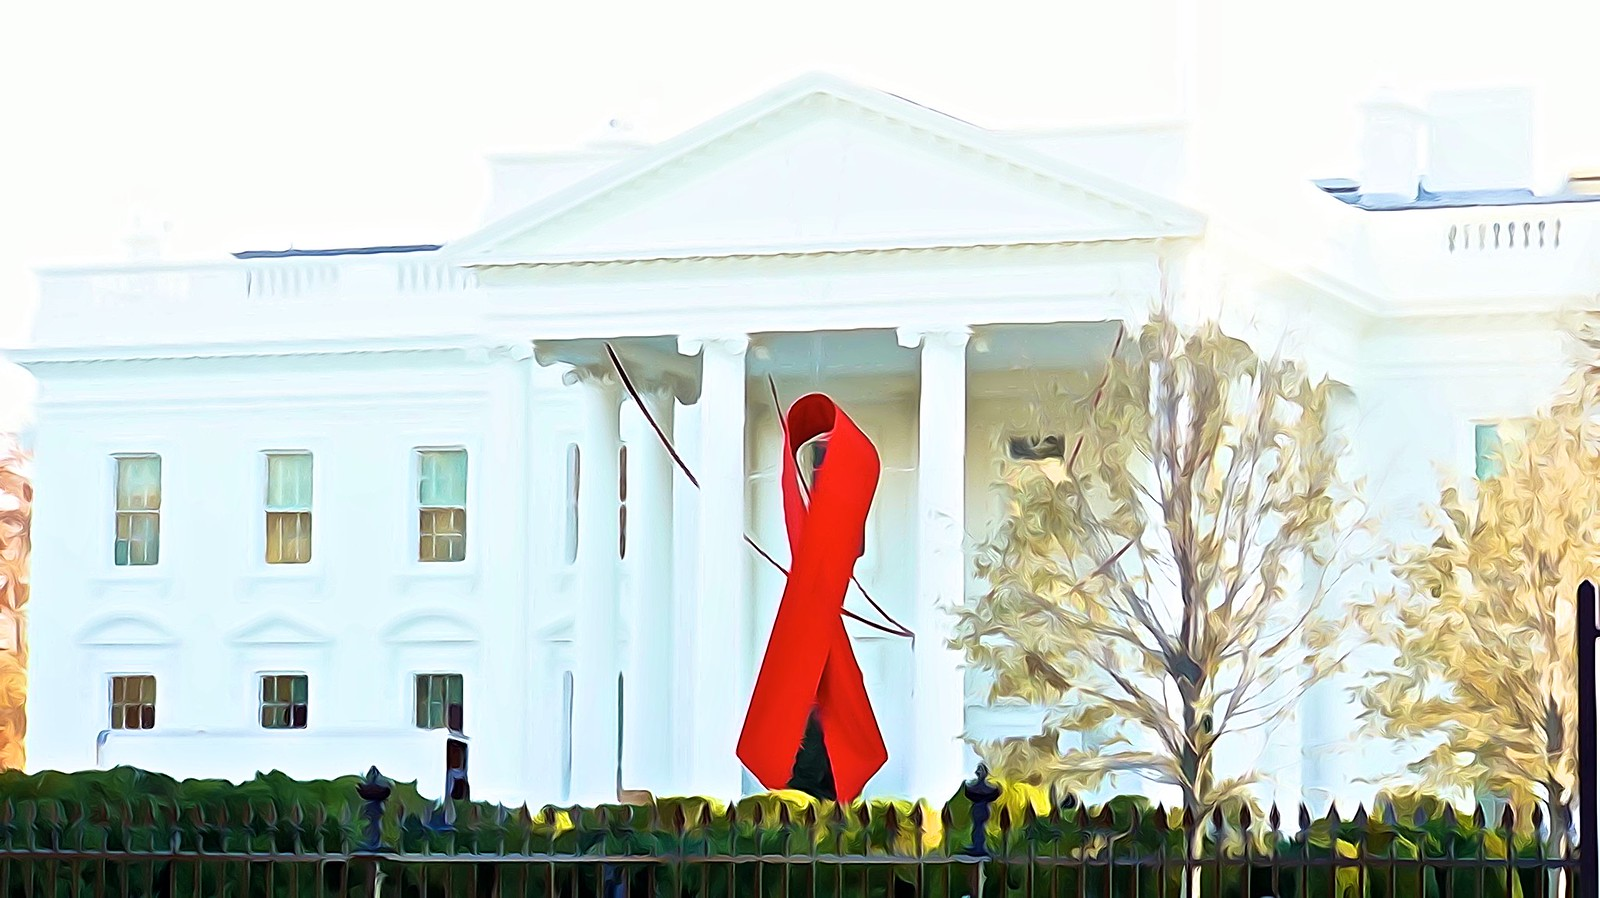 Commemorative Red Ribbon White House 2014 World AIDS Day 50185